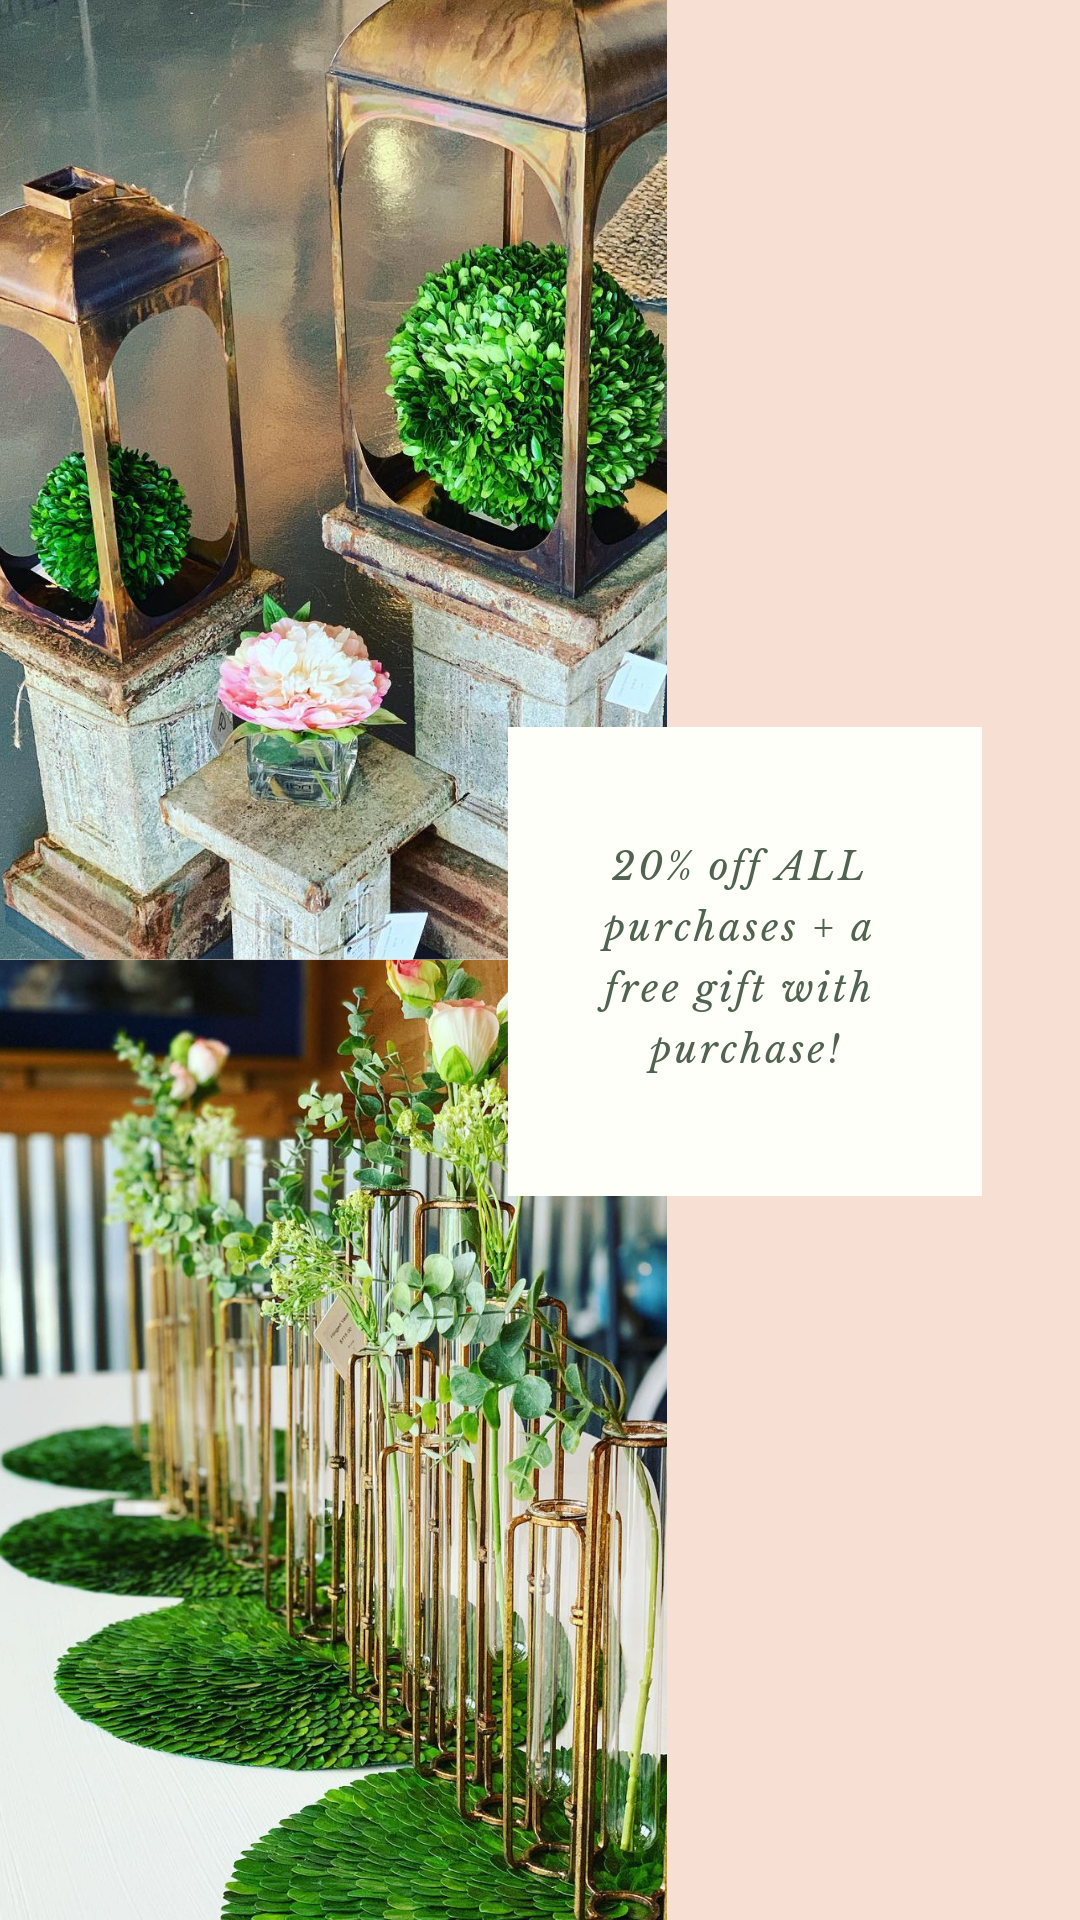 20% off ALL purchases + a free gift with purchase!.png